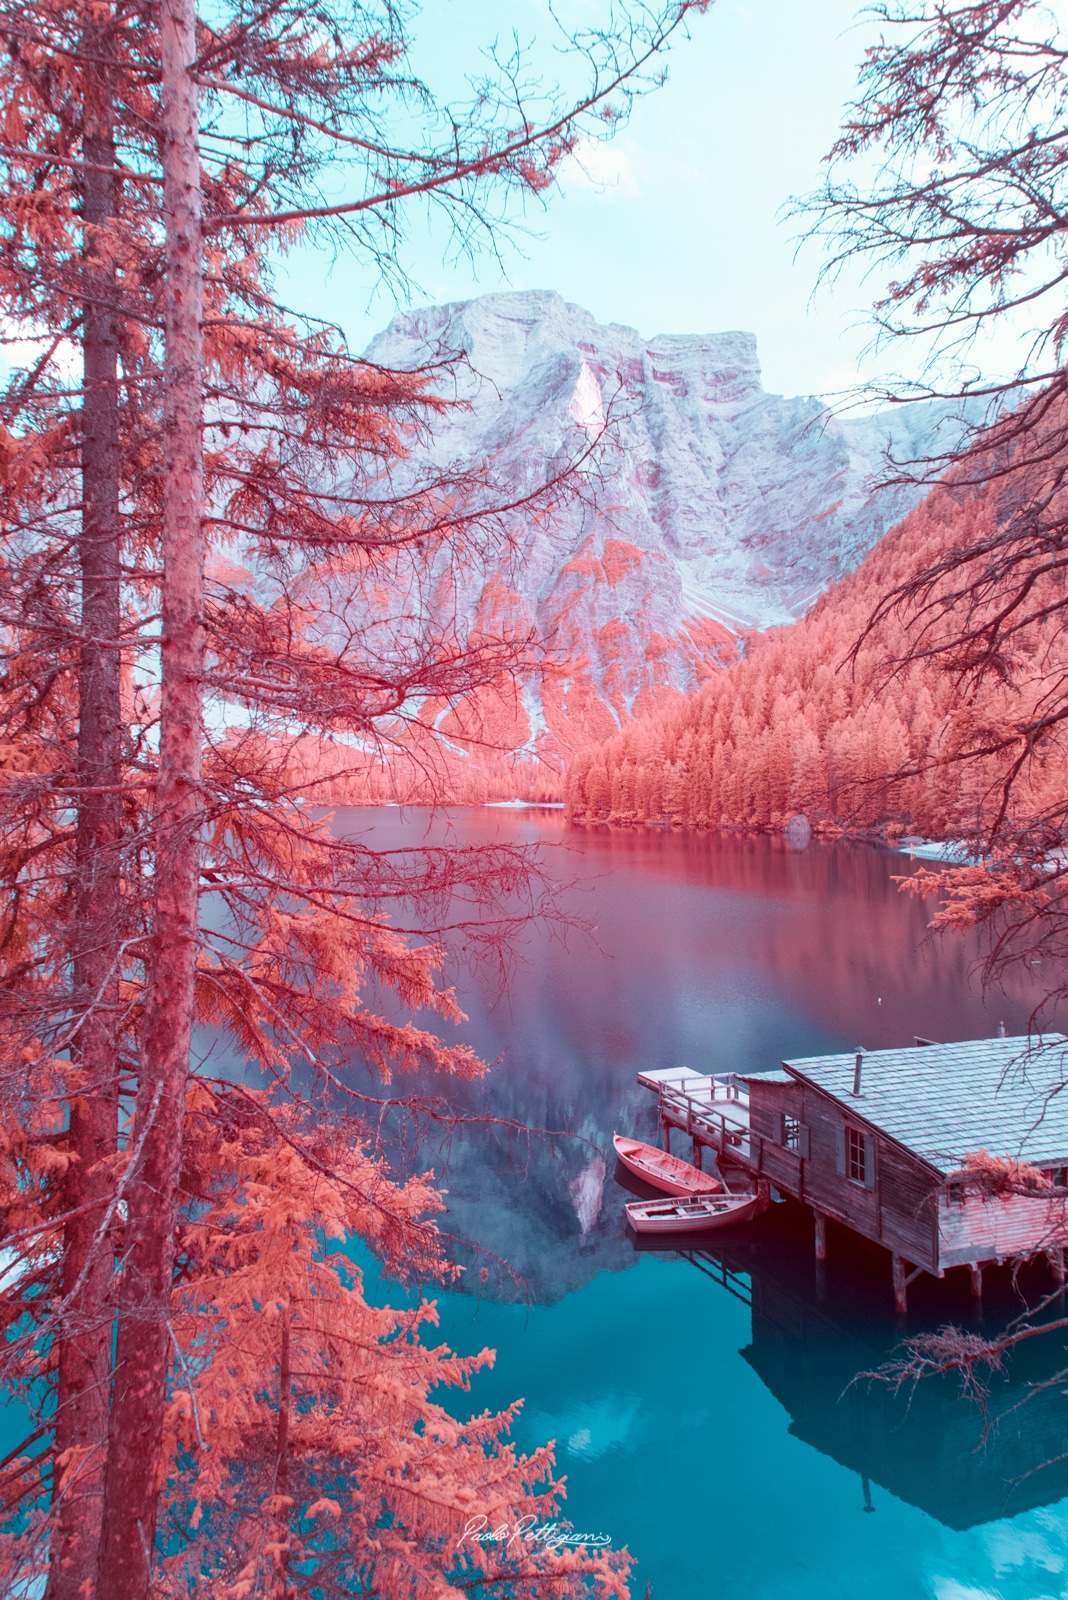 Infrared Photos of the Dolomites by Paolo Pettigiani